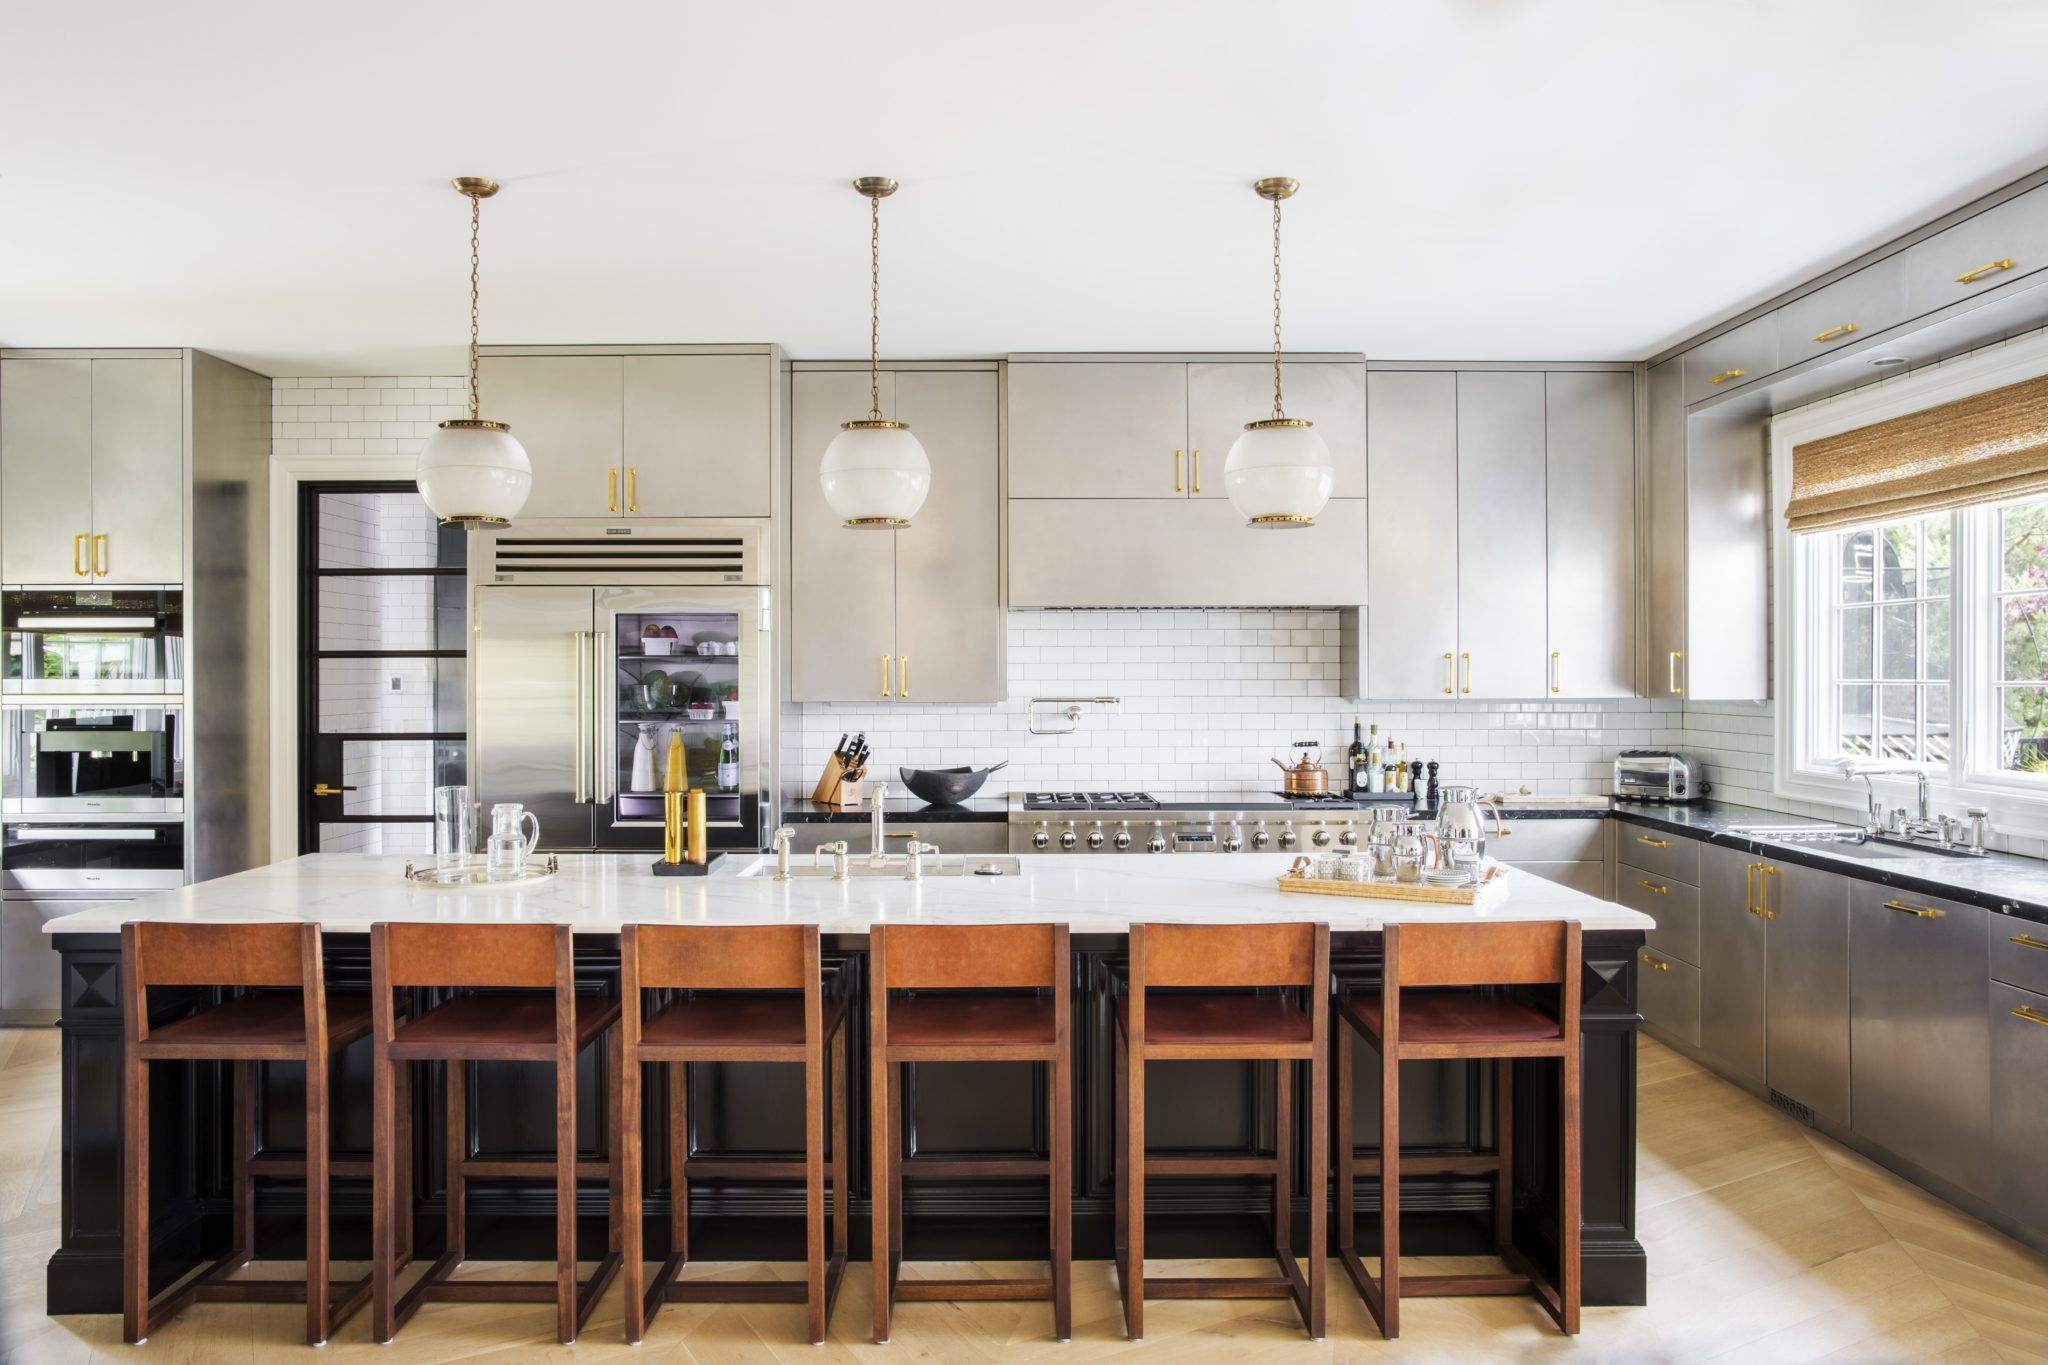 Seattle kitchen with Square Guest counter stools by BDDW Furniture. By Nate Berkus Associates